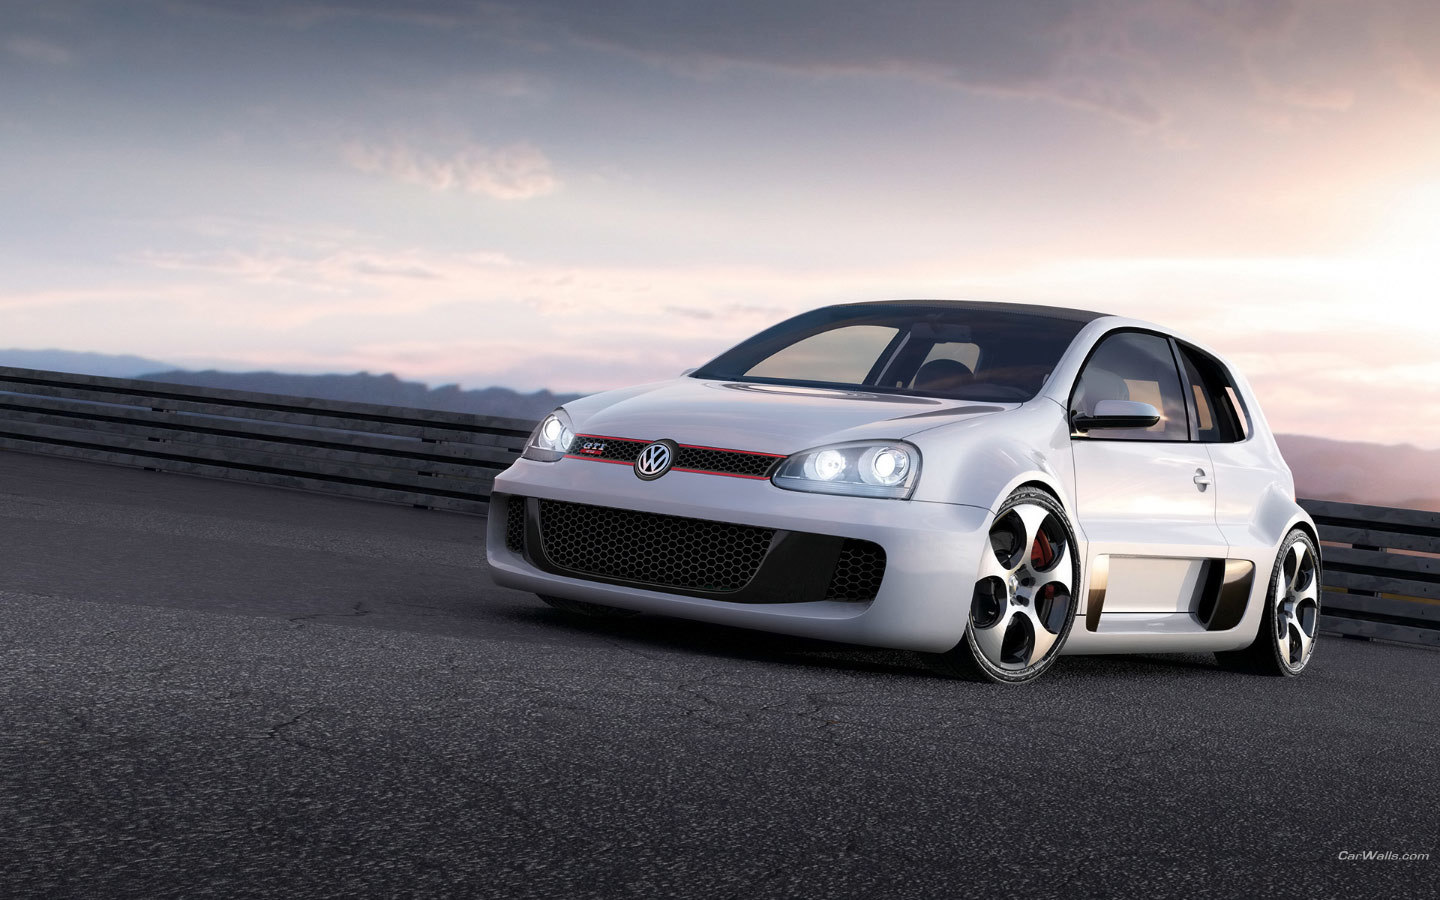 cars golf GTI vehicles HD Wallpaper